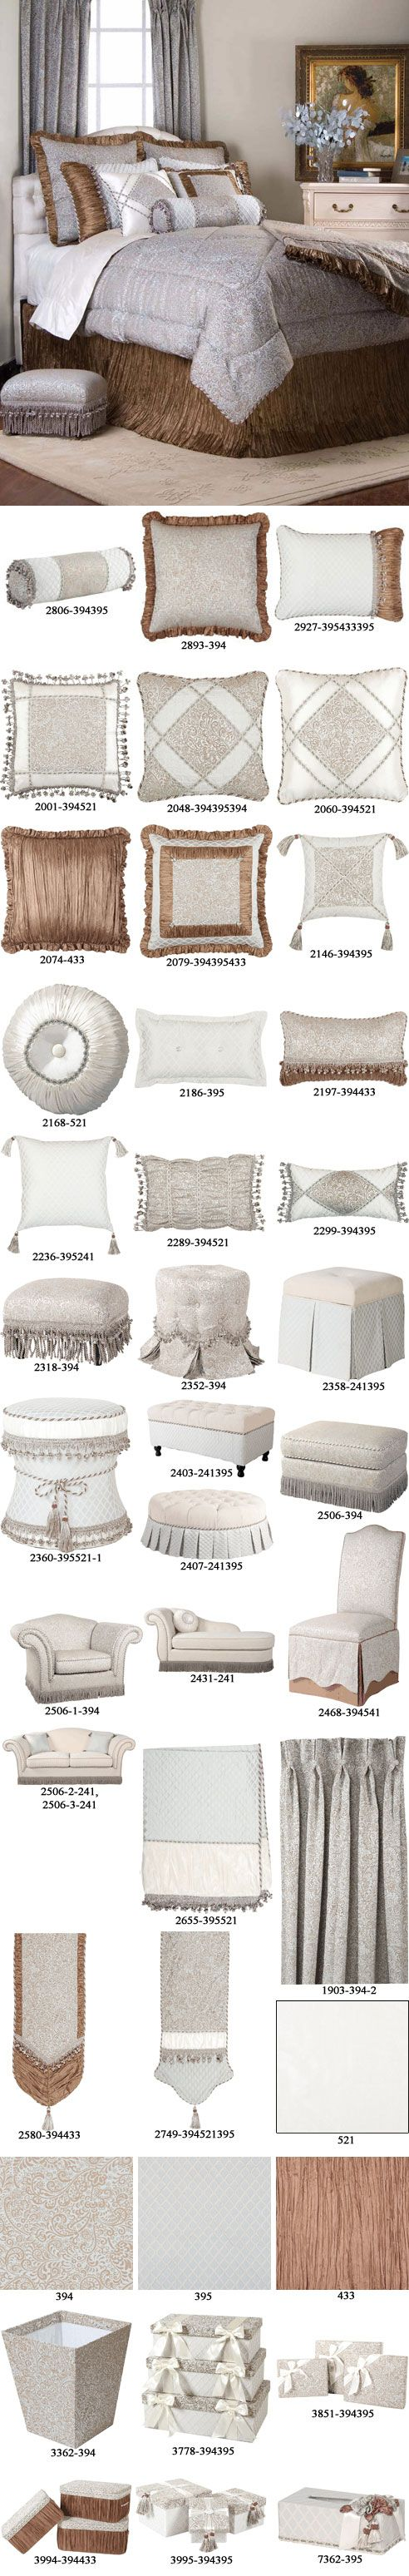 Jennifer Taylor Collection at Luxury Bedding AndLinens.com THIS IS THE MOST REASONABLE SITE TO PURCHASE LUXURY BEDDING ASSEMBLES FROM.